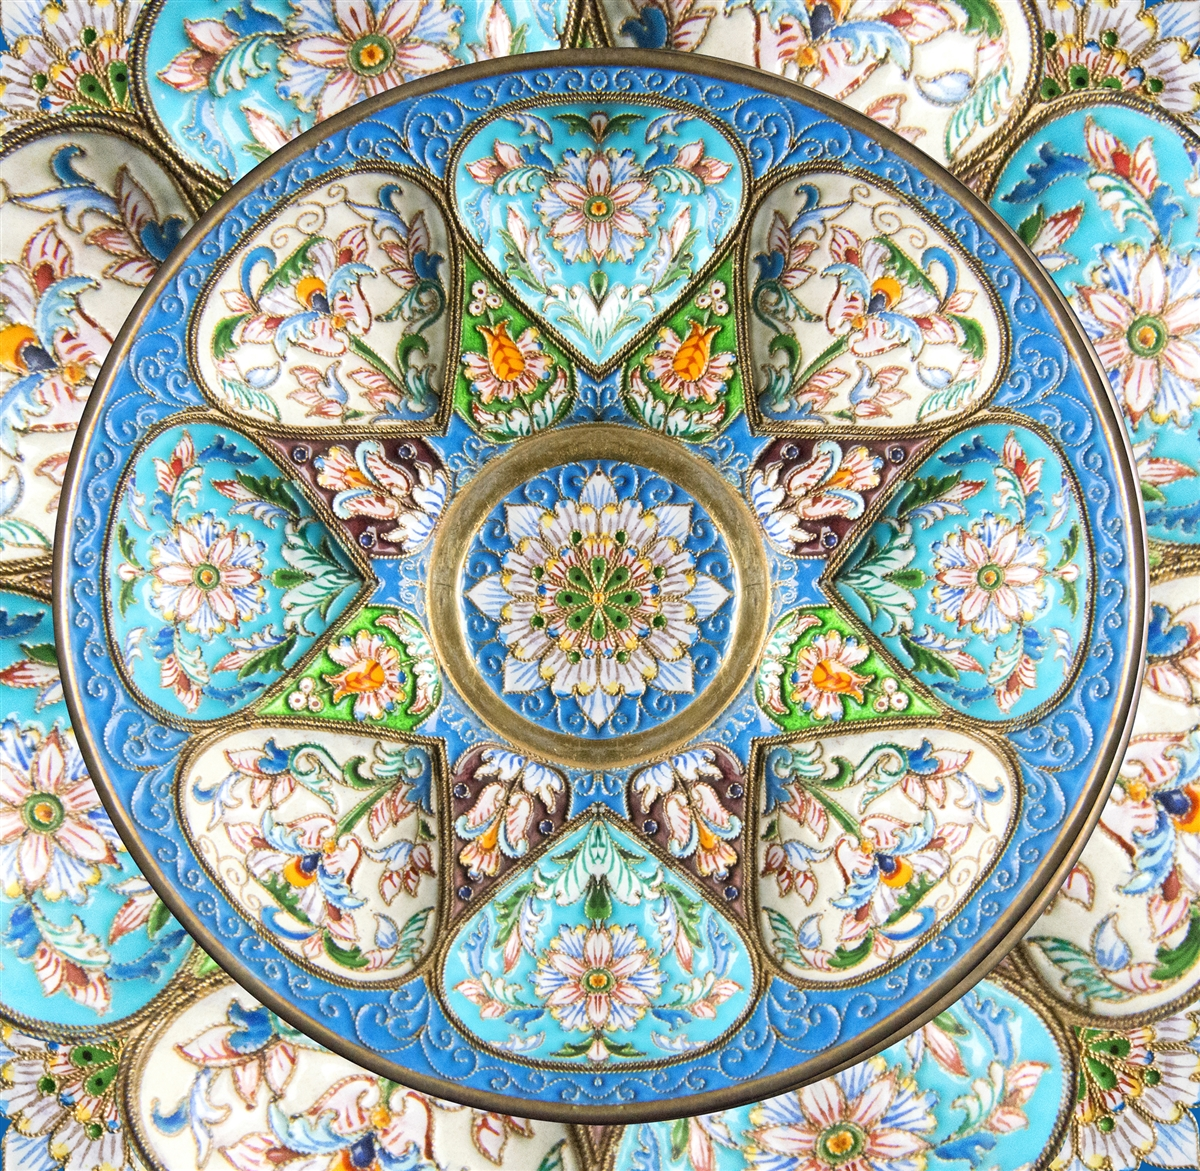 Timeless Turquoise Crafts & Textile Arts Jigsaw Puzzle